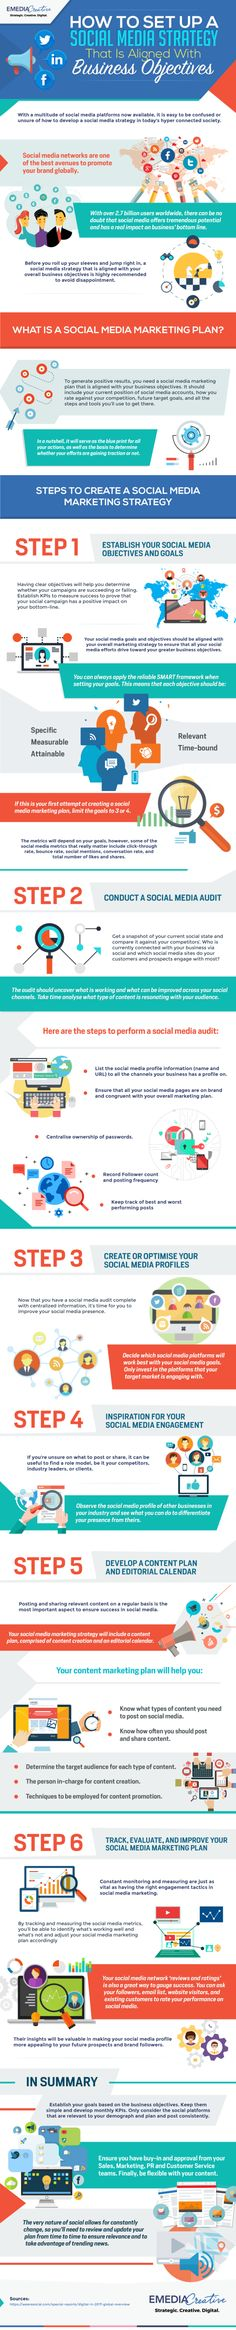 How To Set Up A Social Media Strategy That Is Aligned With Business Objectives - #infographic